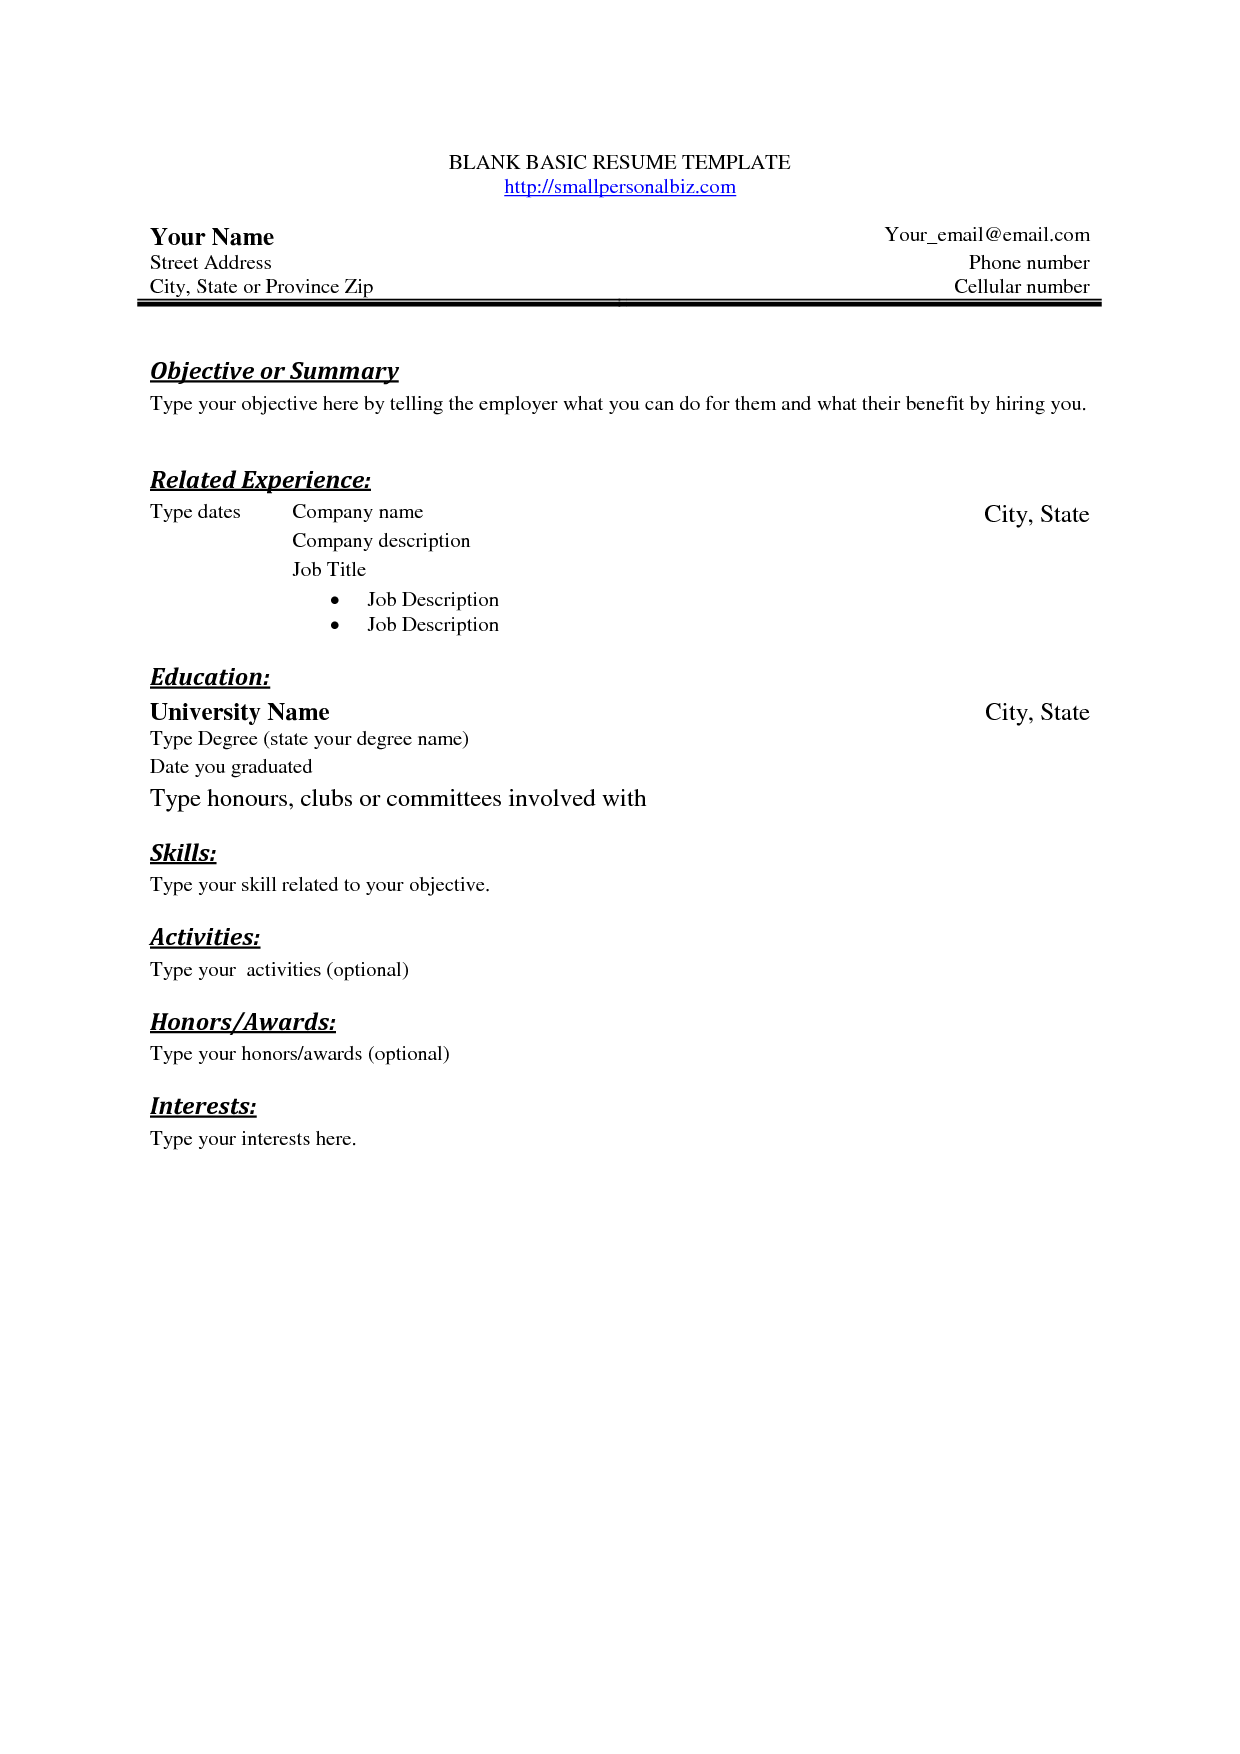 Free Basic Blank Resume Template Free Basic Sample Resume Resume Outline Simple Resume Examples Basic Resume